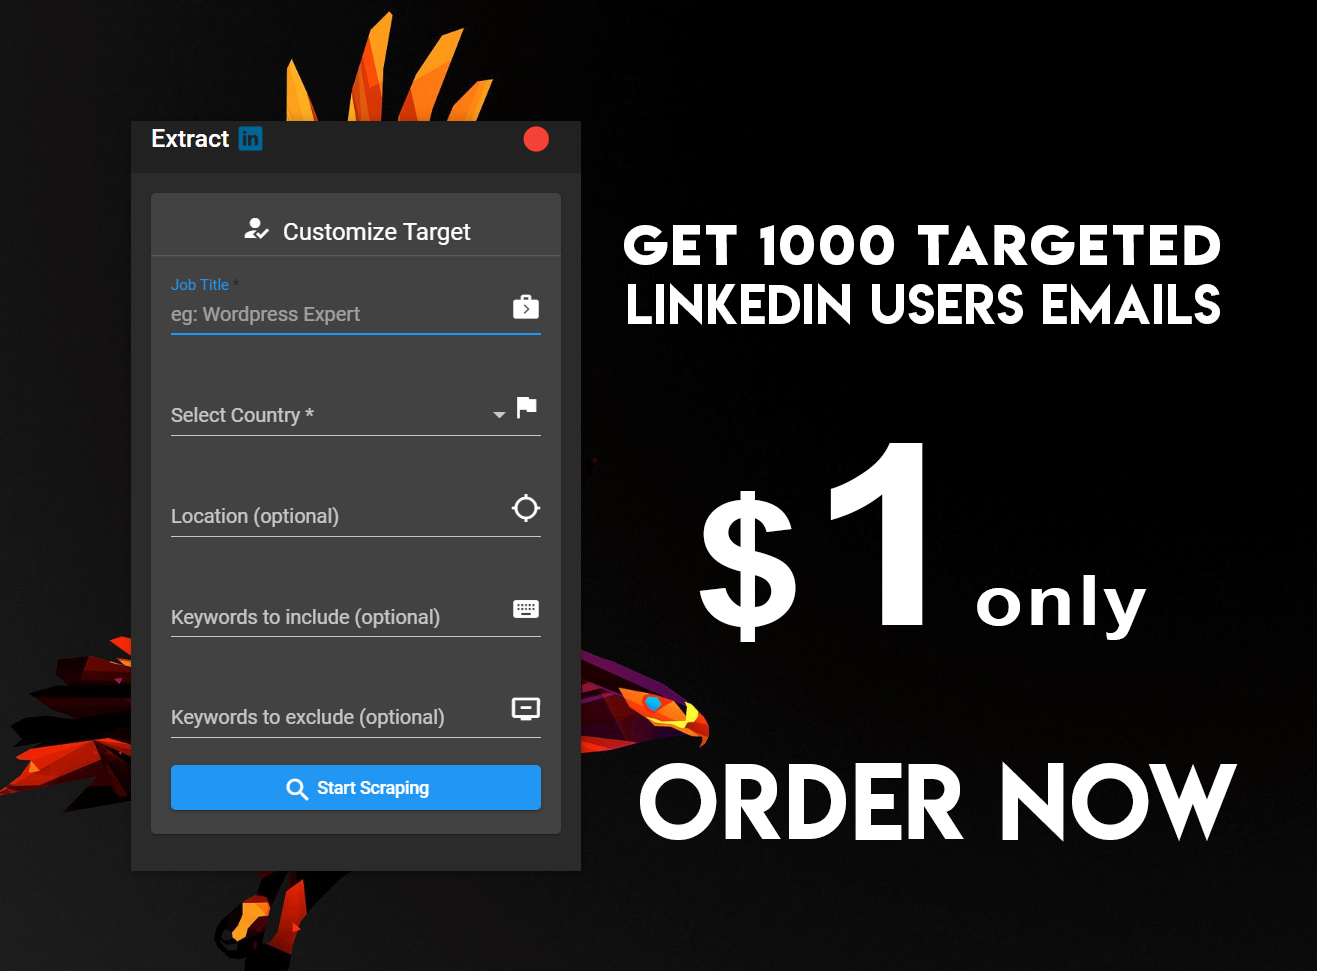 Linkedin targeted users 1000 emails